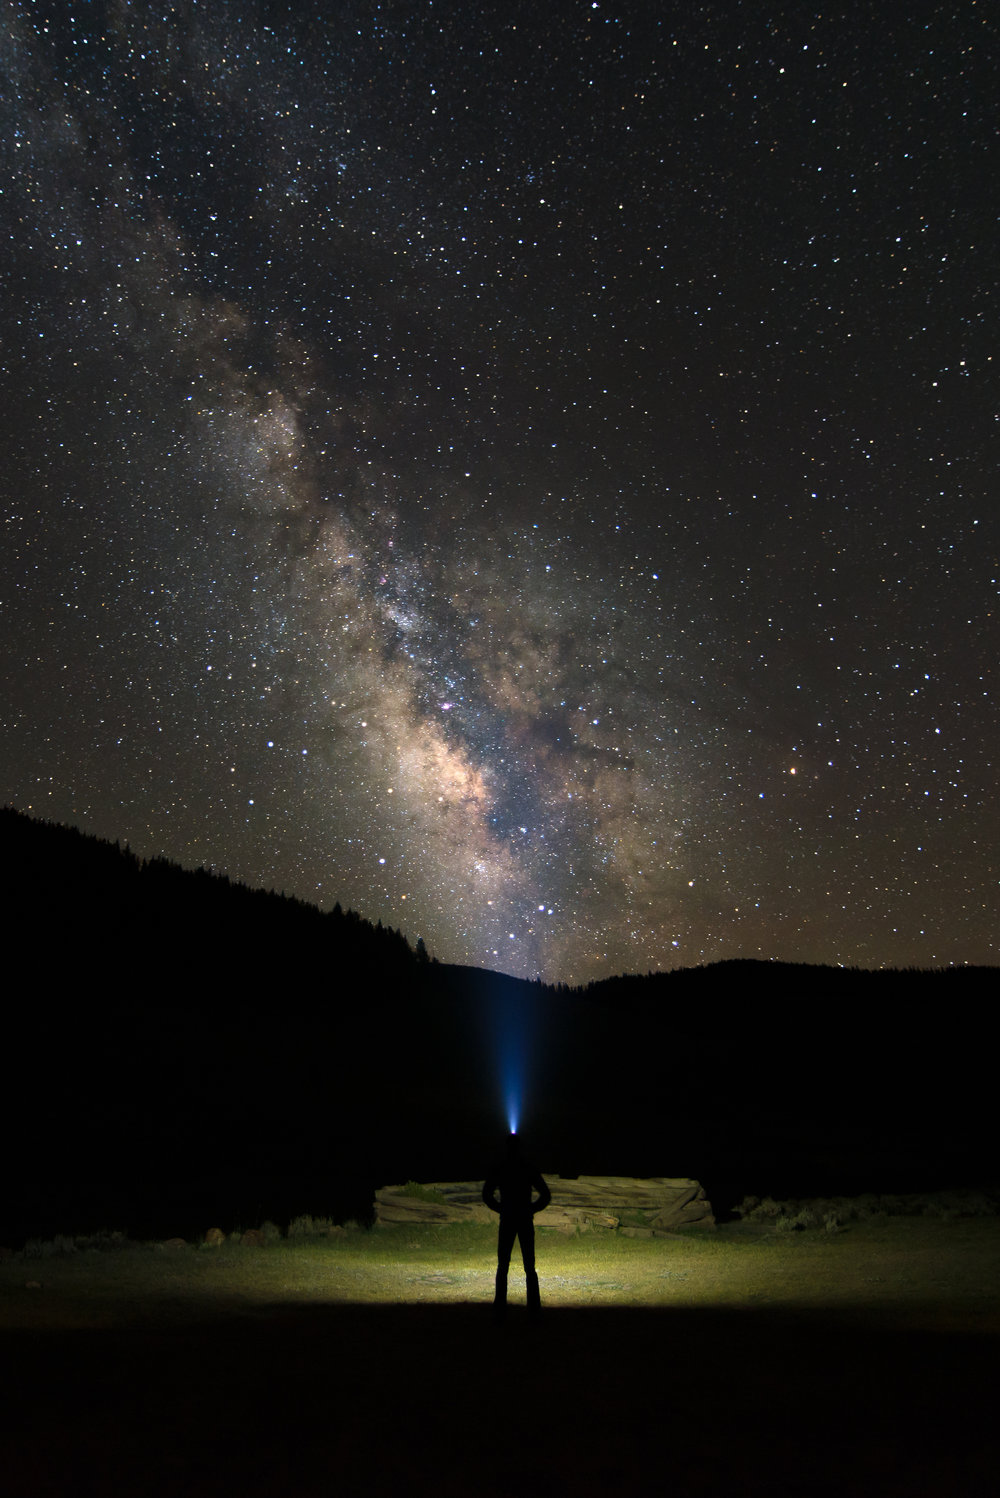 A lone camper watches the Milky Way set over their campsite